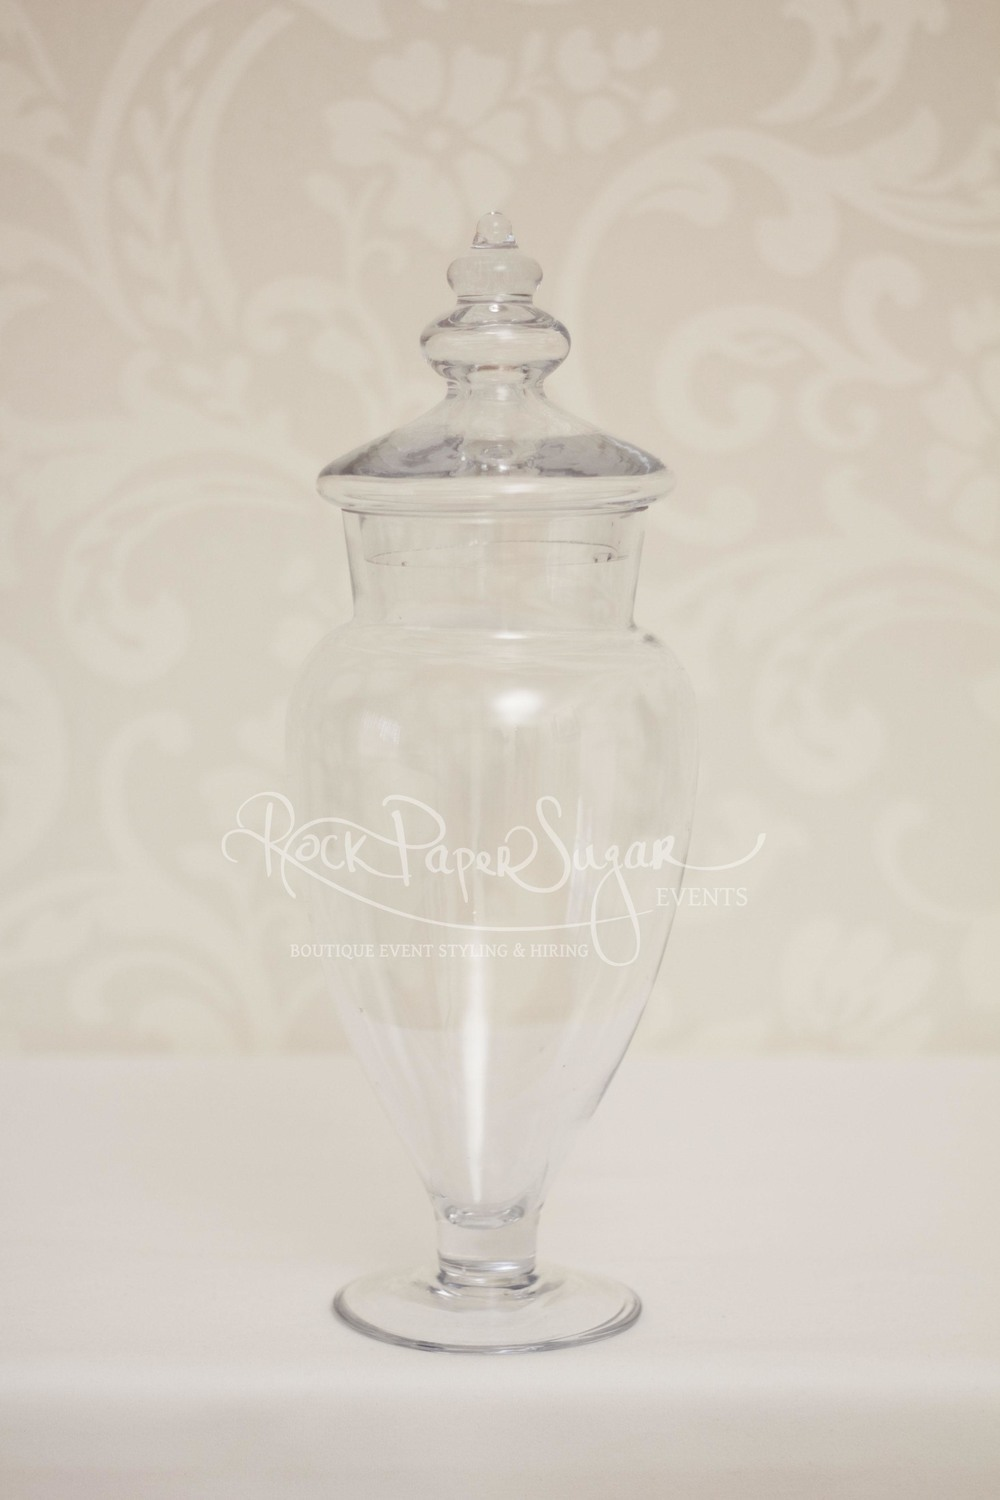 Rock Paper Sugar Events Glassware 001.jpg